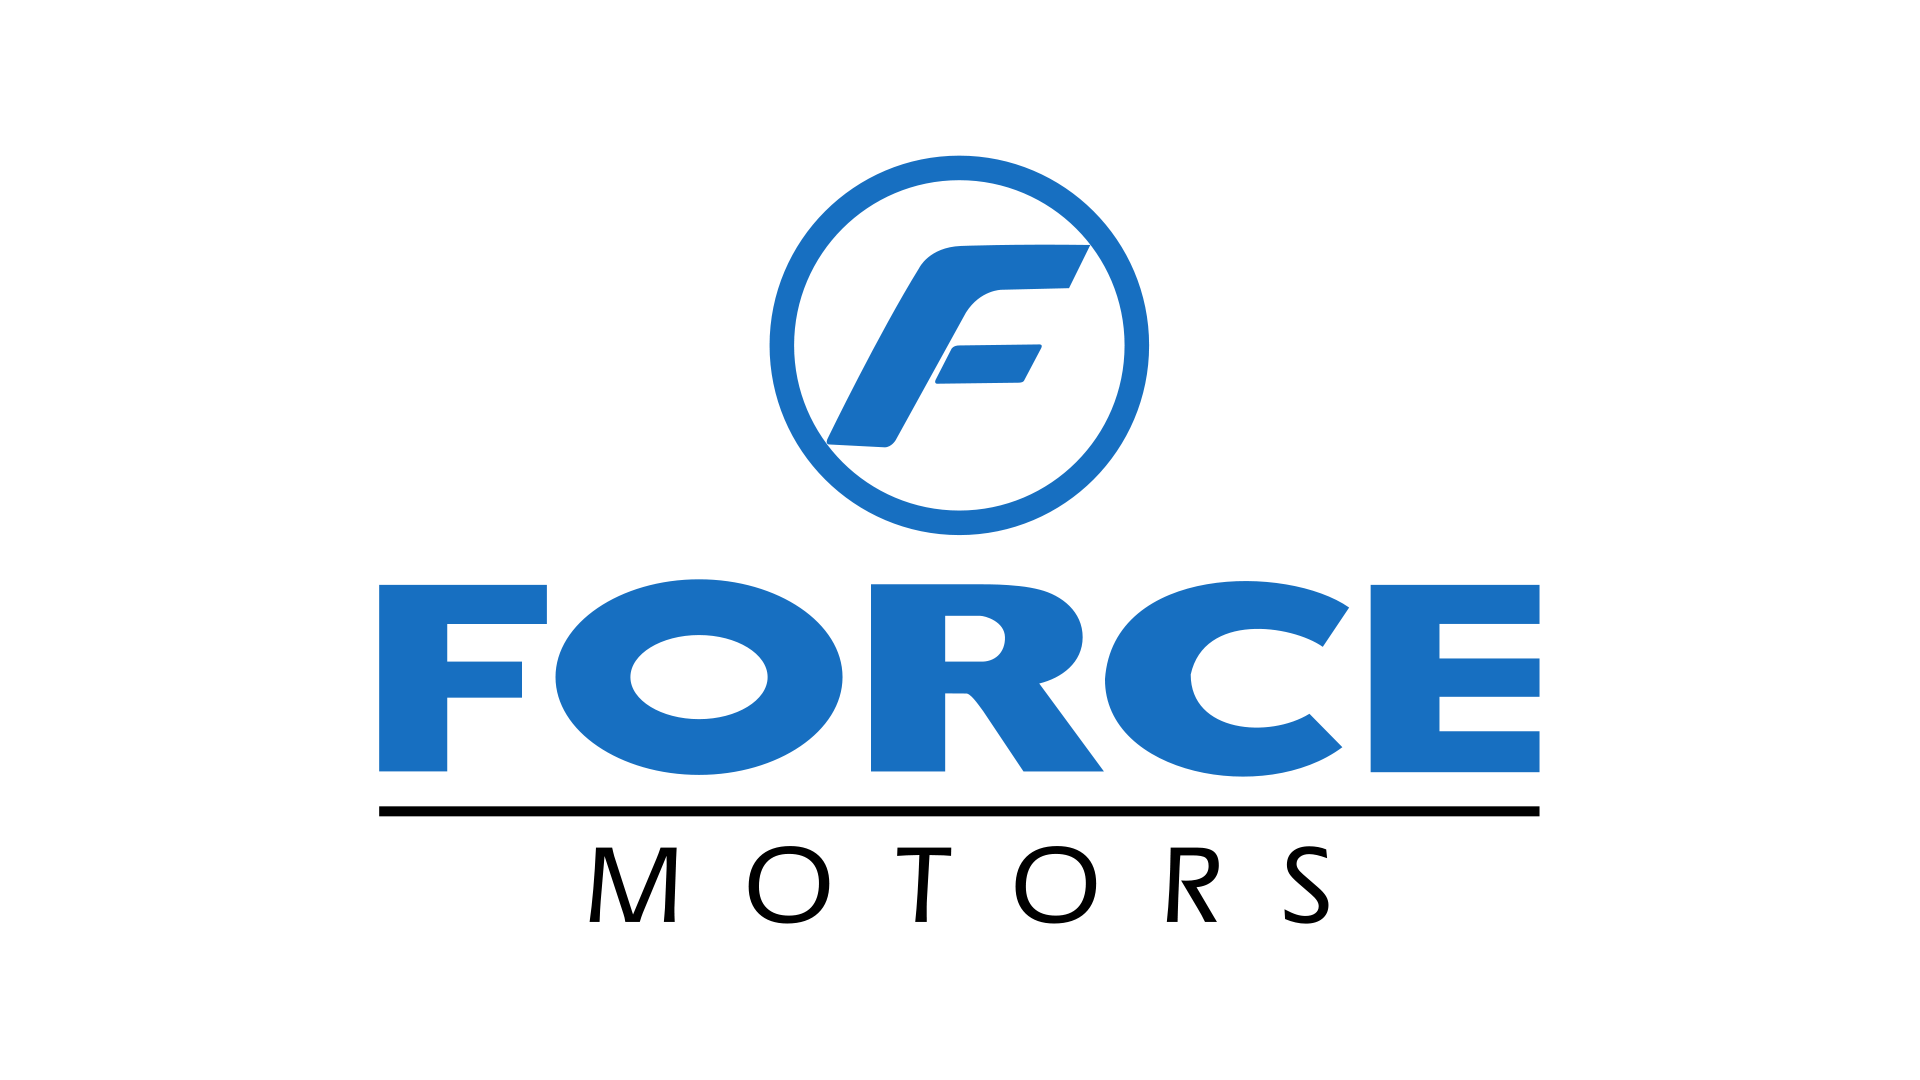 Force-Motors-logo-1920x1080.png